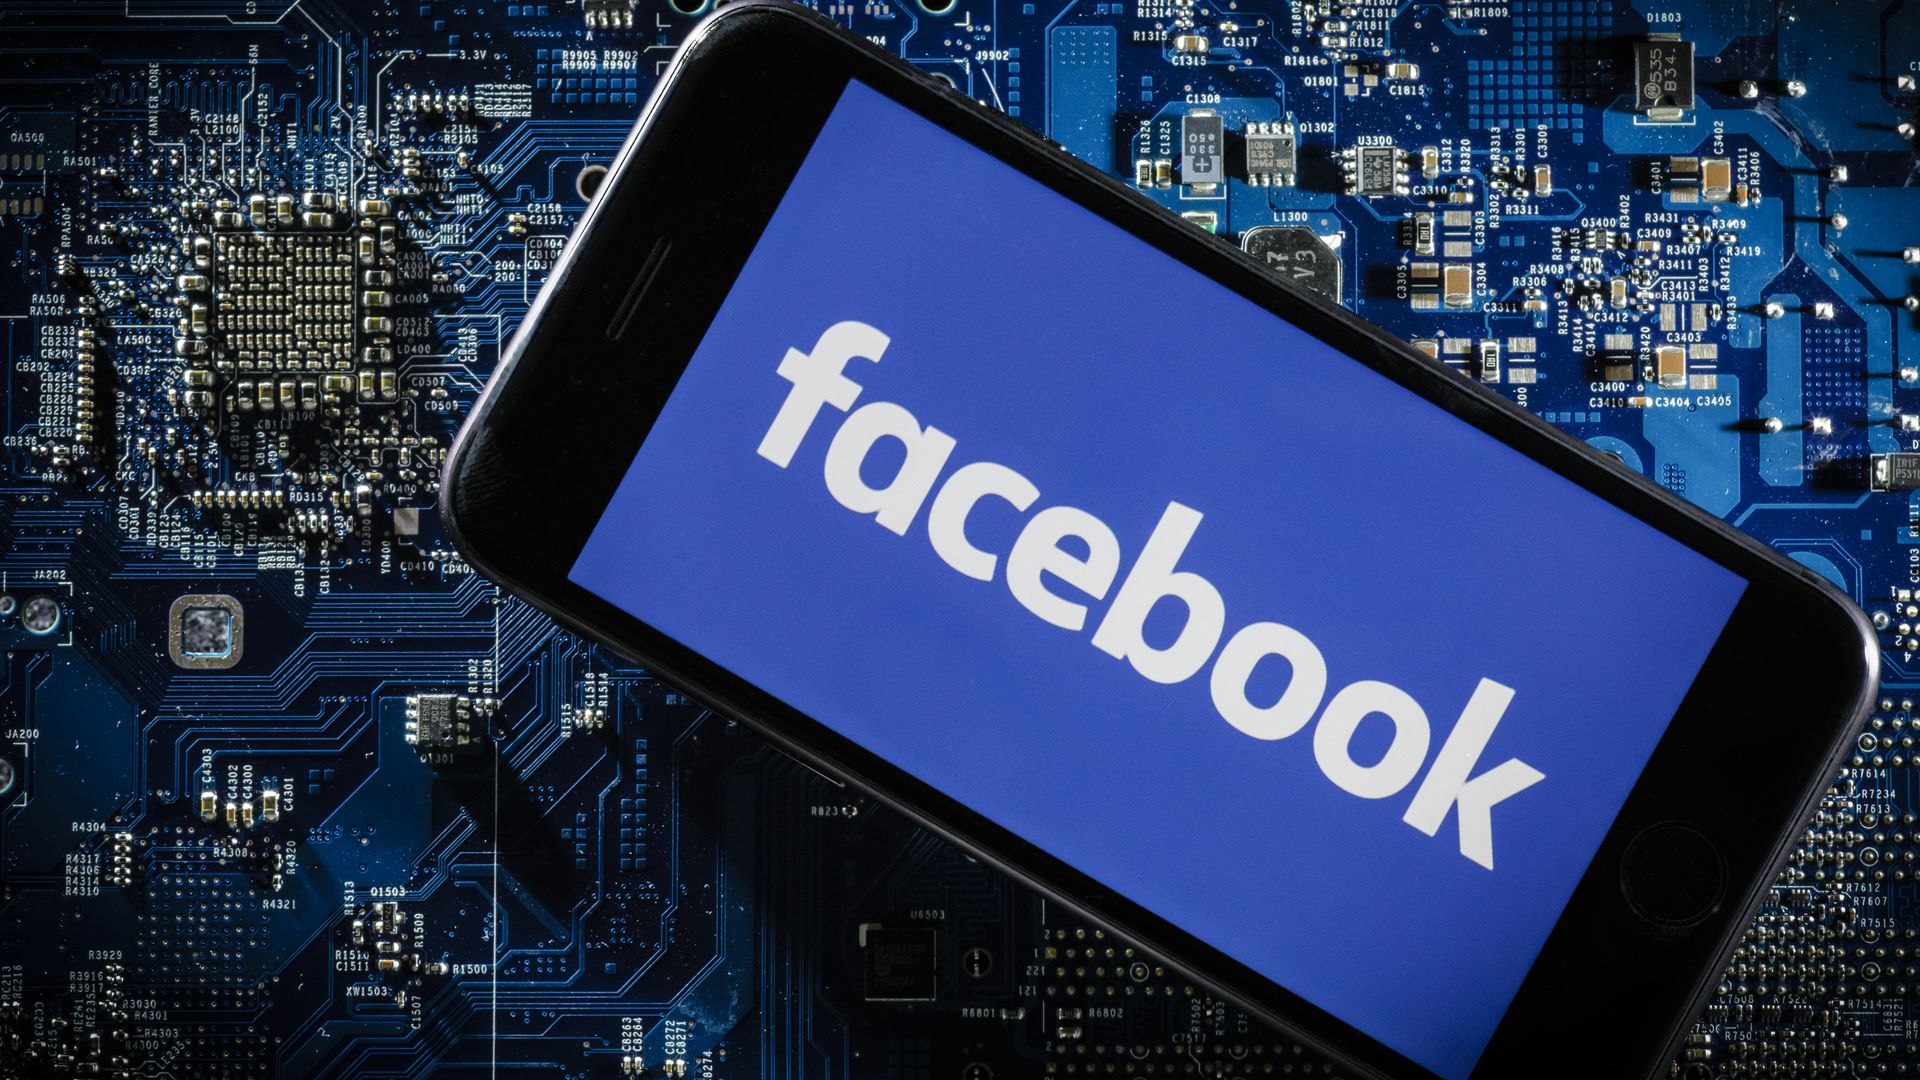 Researchers discover Facebook hacker markets with nearly 400,000 members